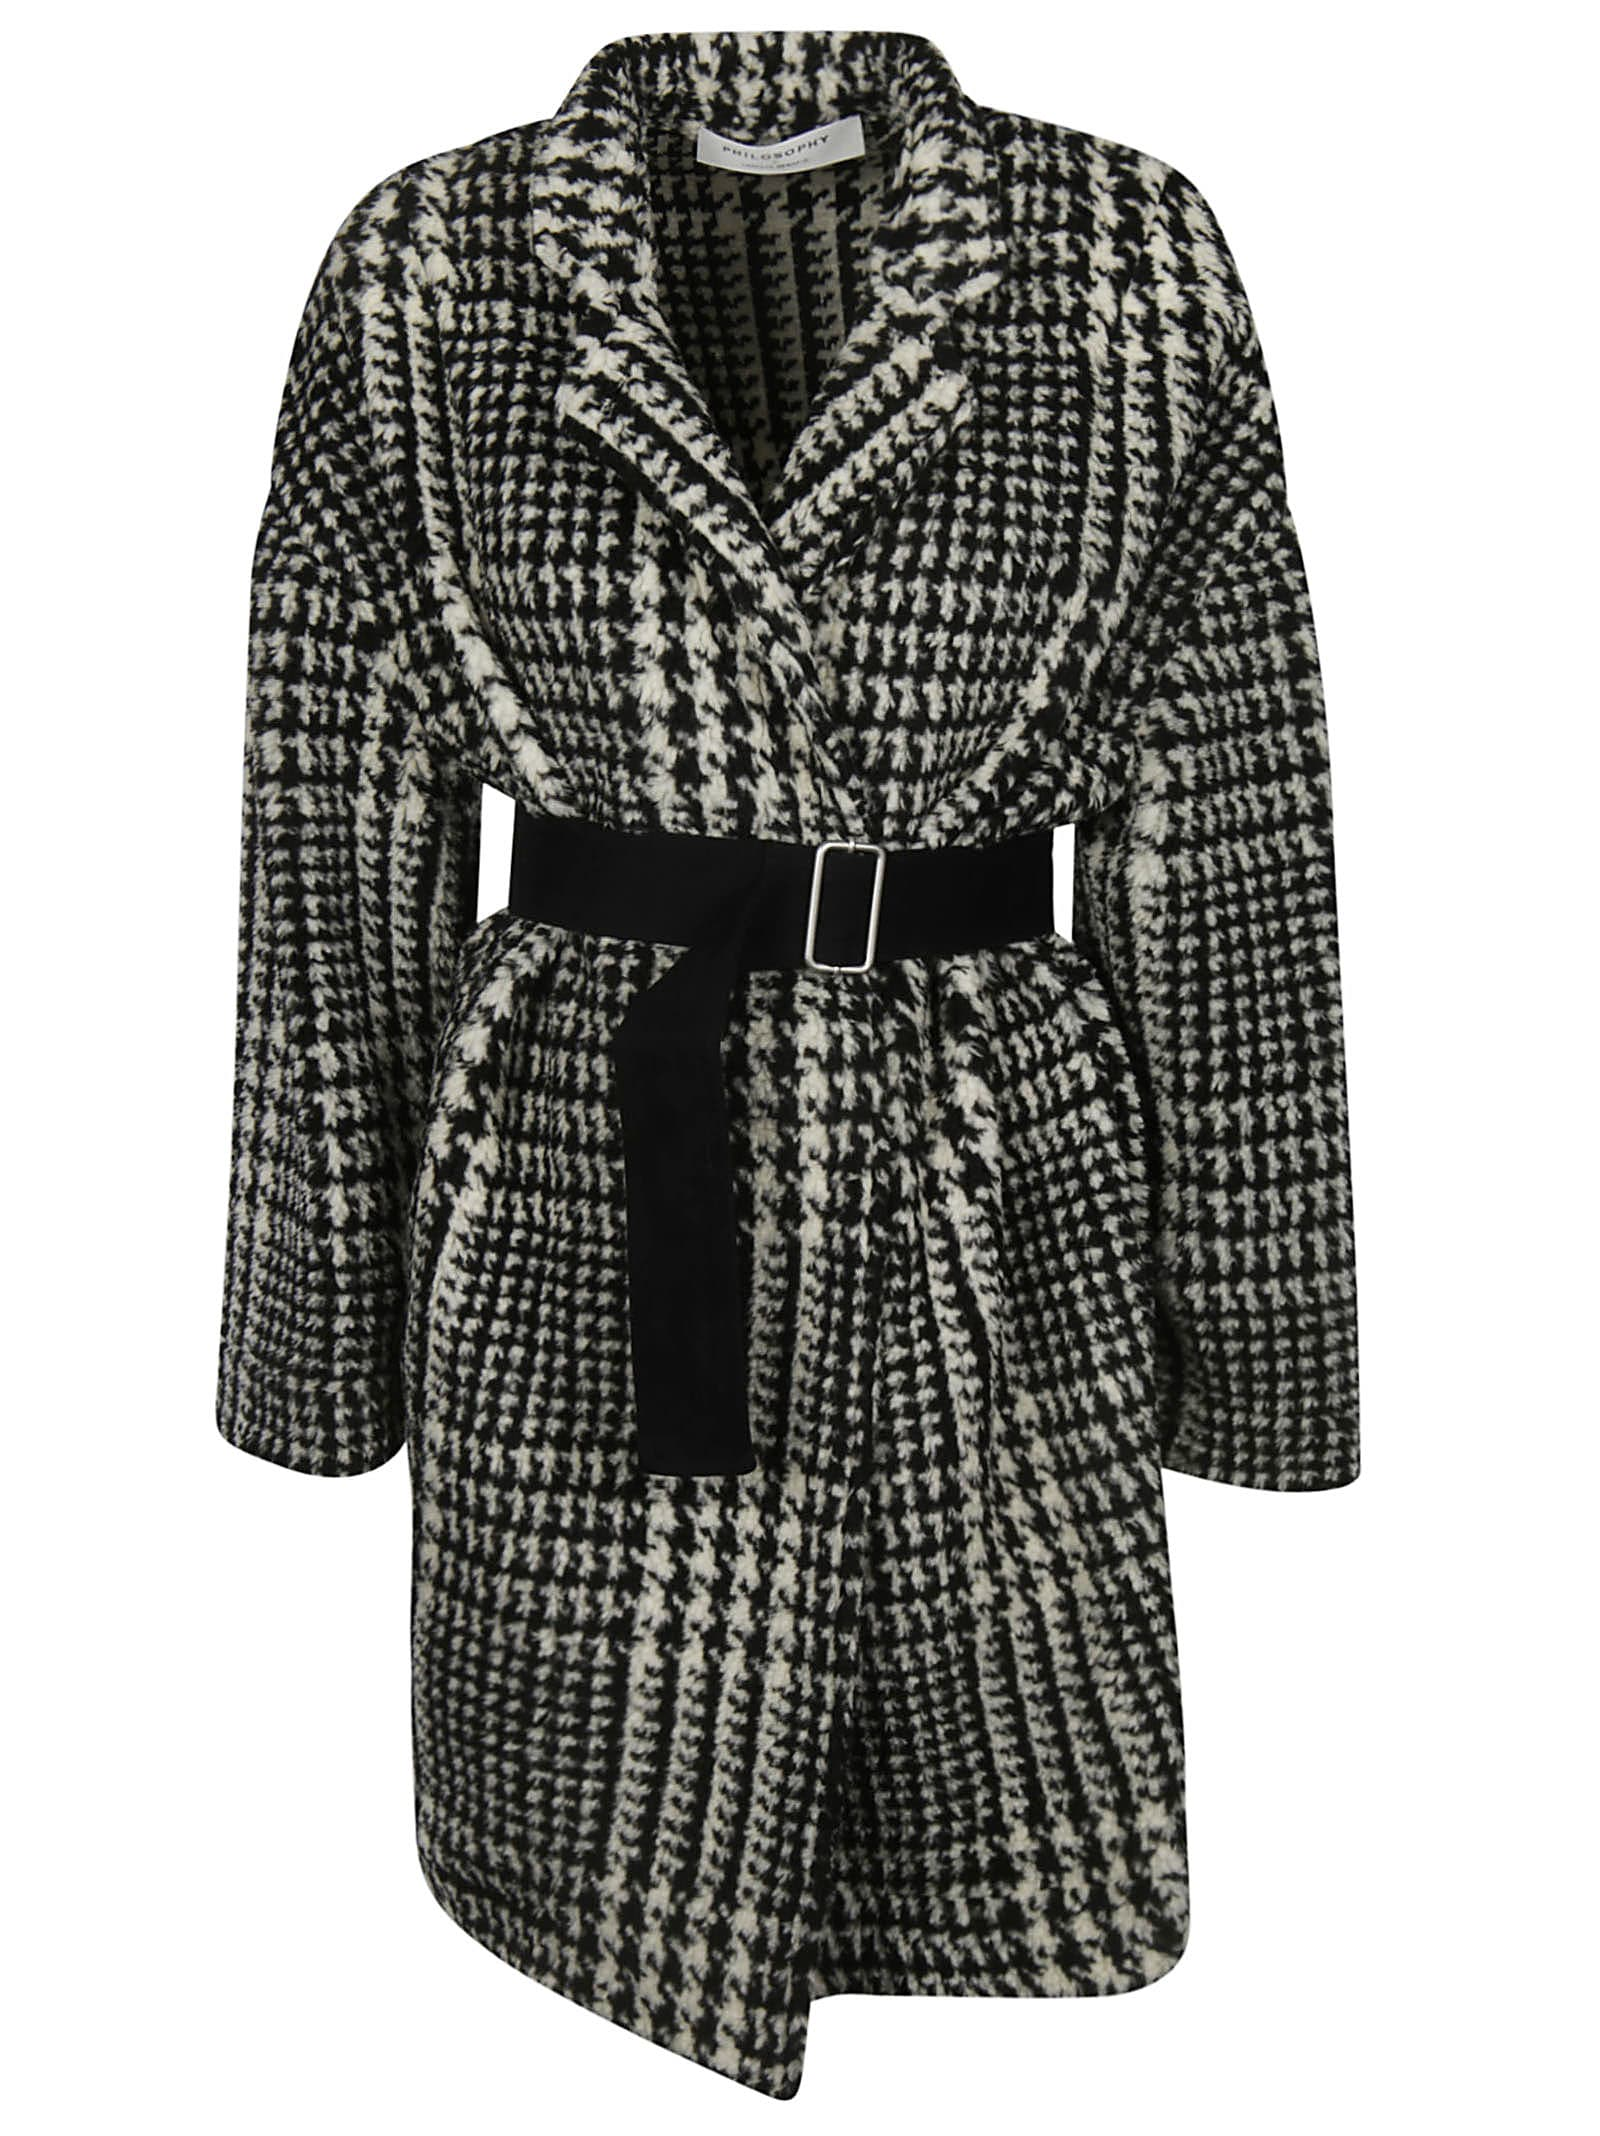 Philosophy di Lorenzo Serafini Tweed Jacket